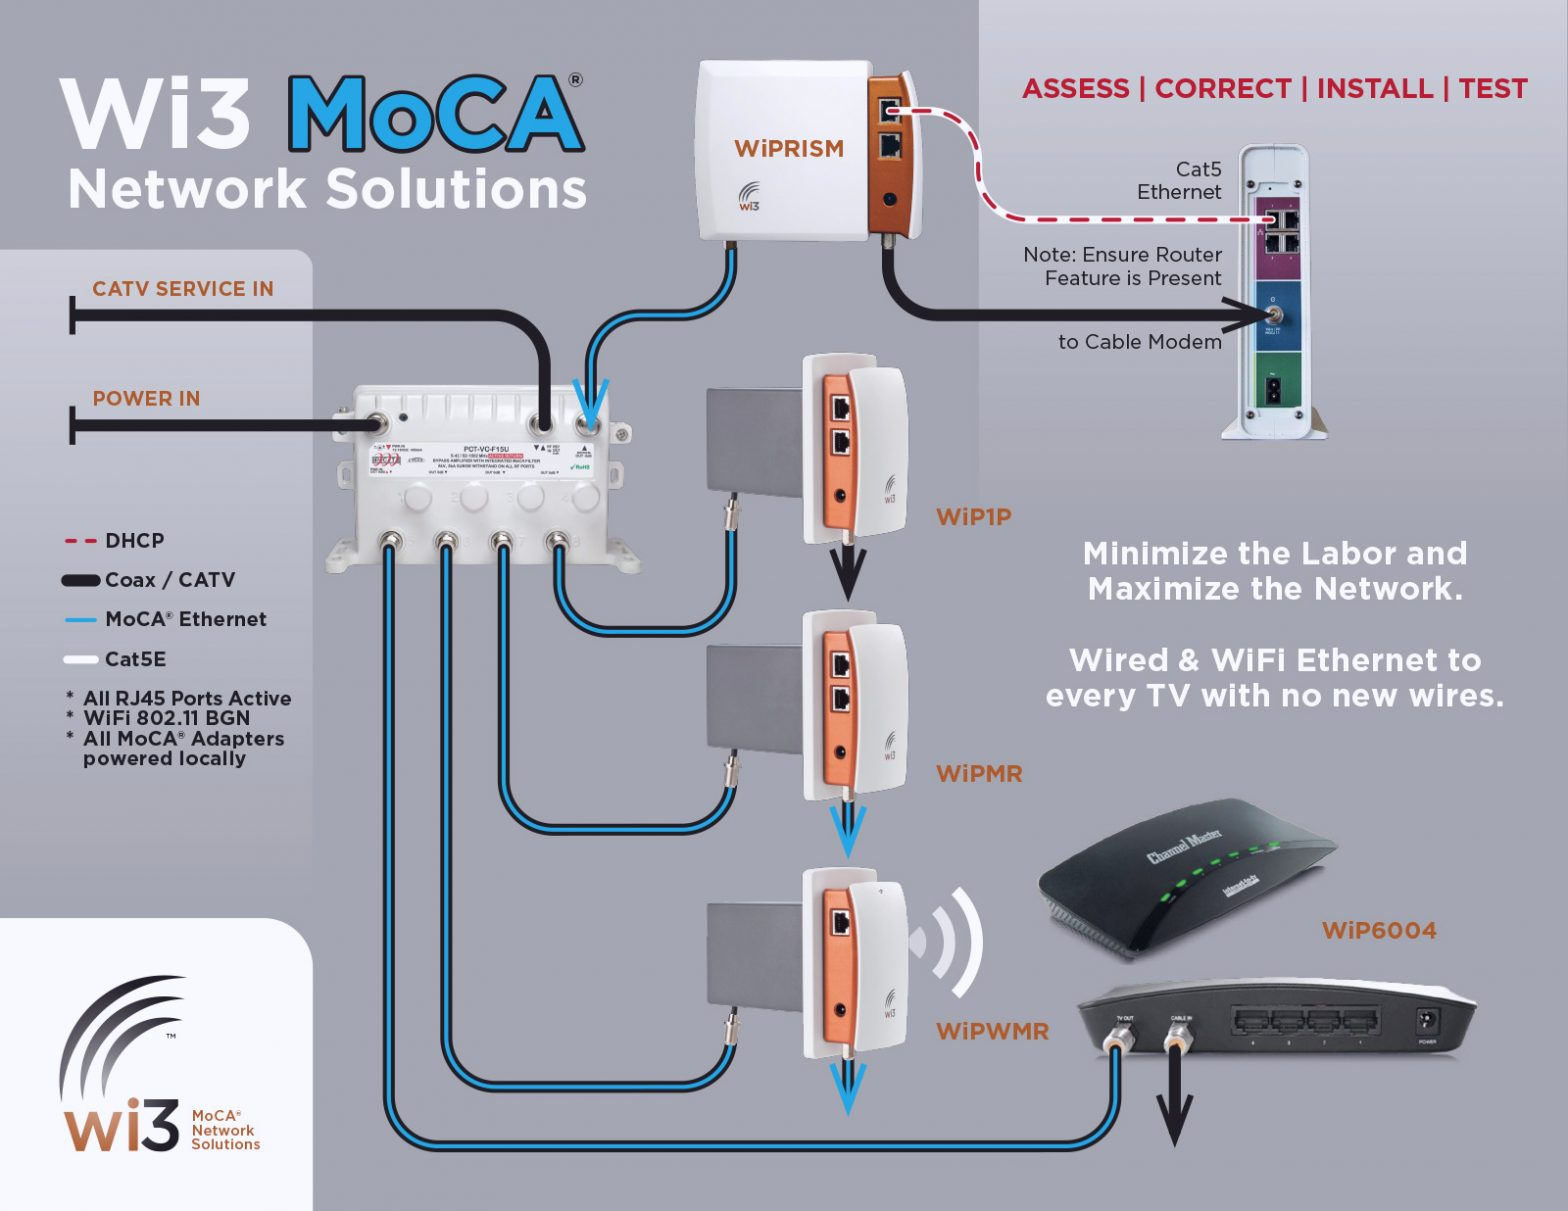 Moca Network Wiring Diagram Wi3 Moca Network solutions Joins Home Technology